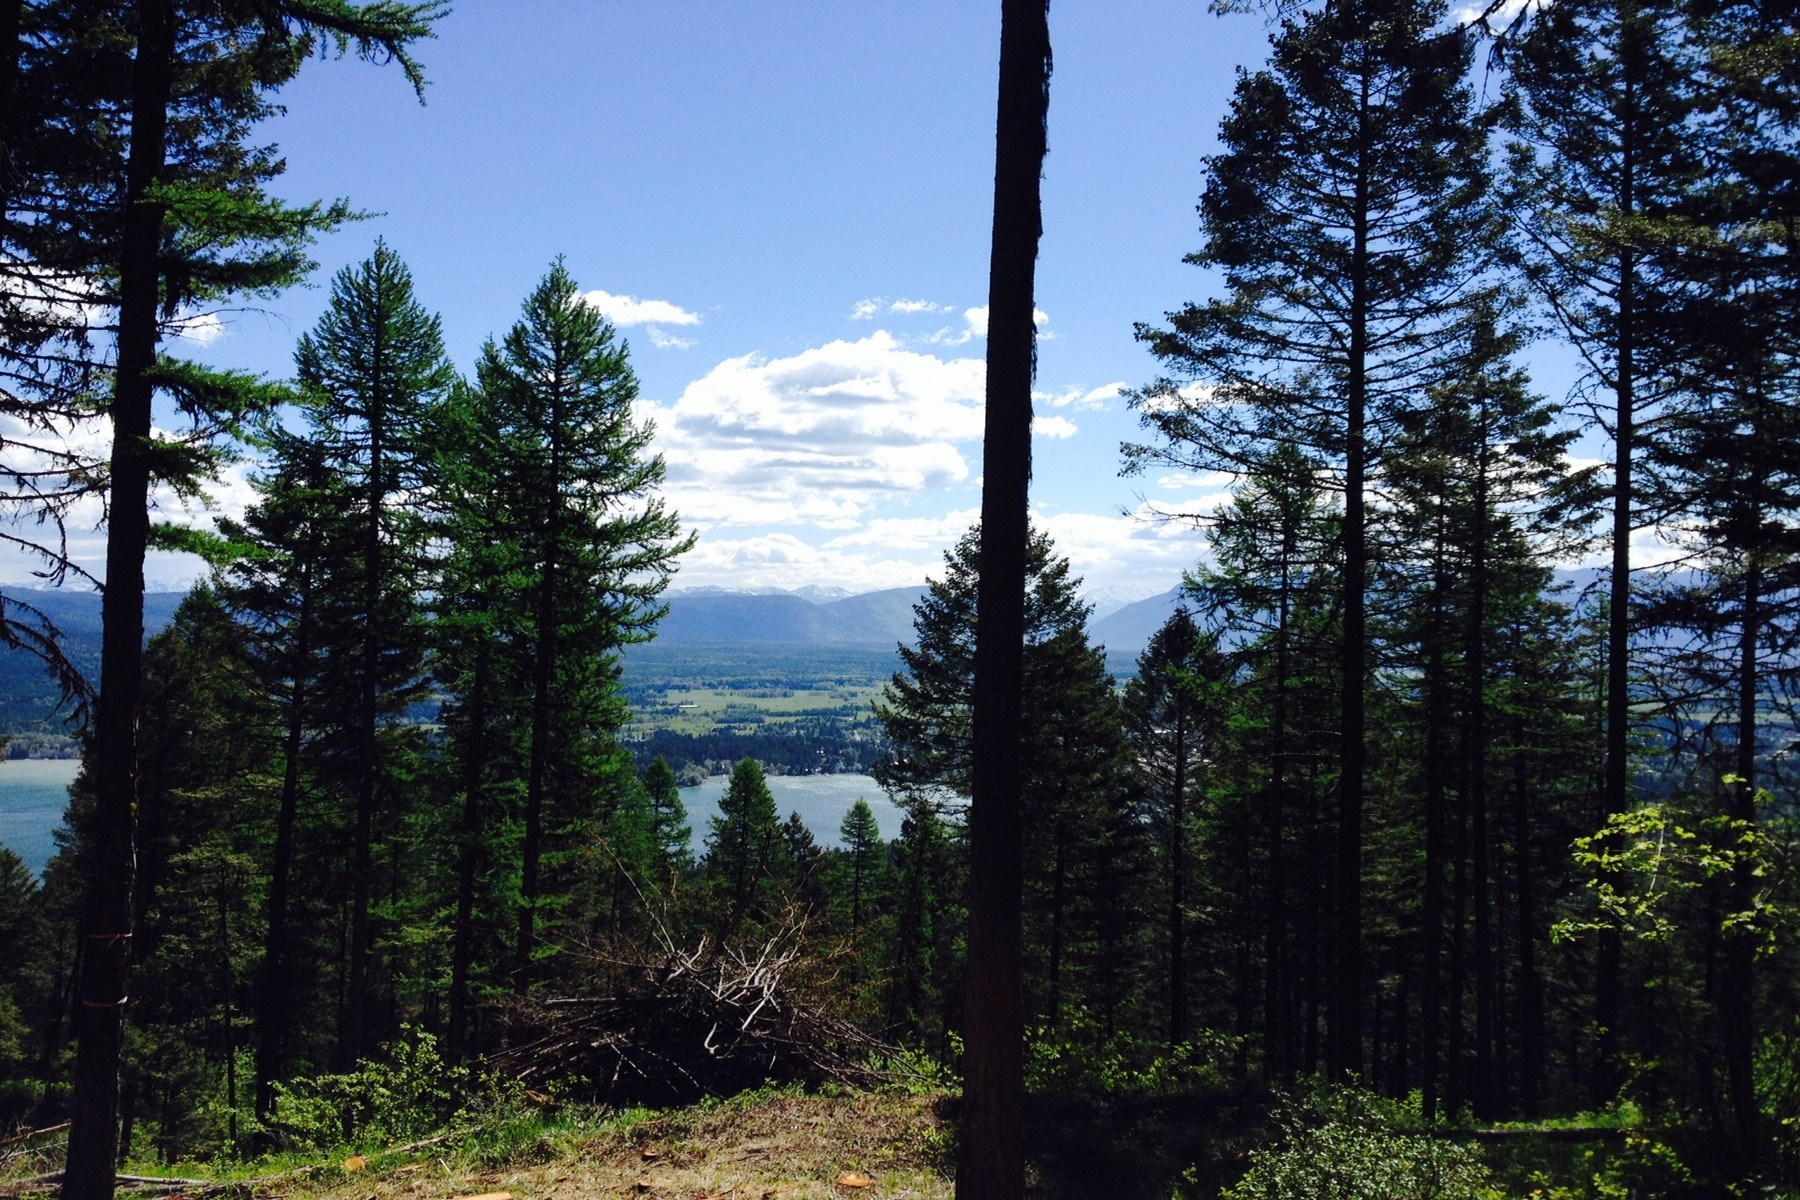 Land for Sale at 2475 Wolf Tail Pines Rd , Whitefish, MT 59937 2475 Wolf Tail Pines Rd Whitefish, Montana 59937 United States